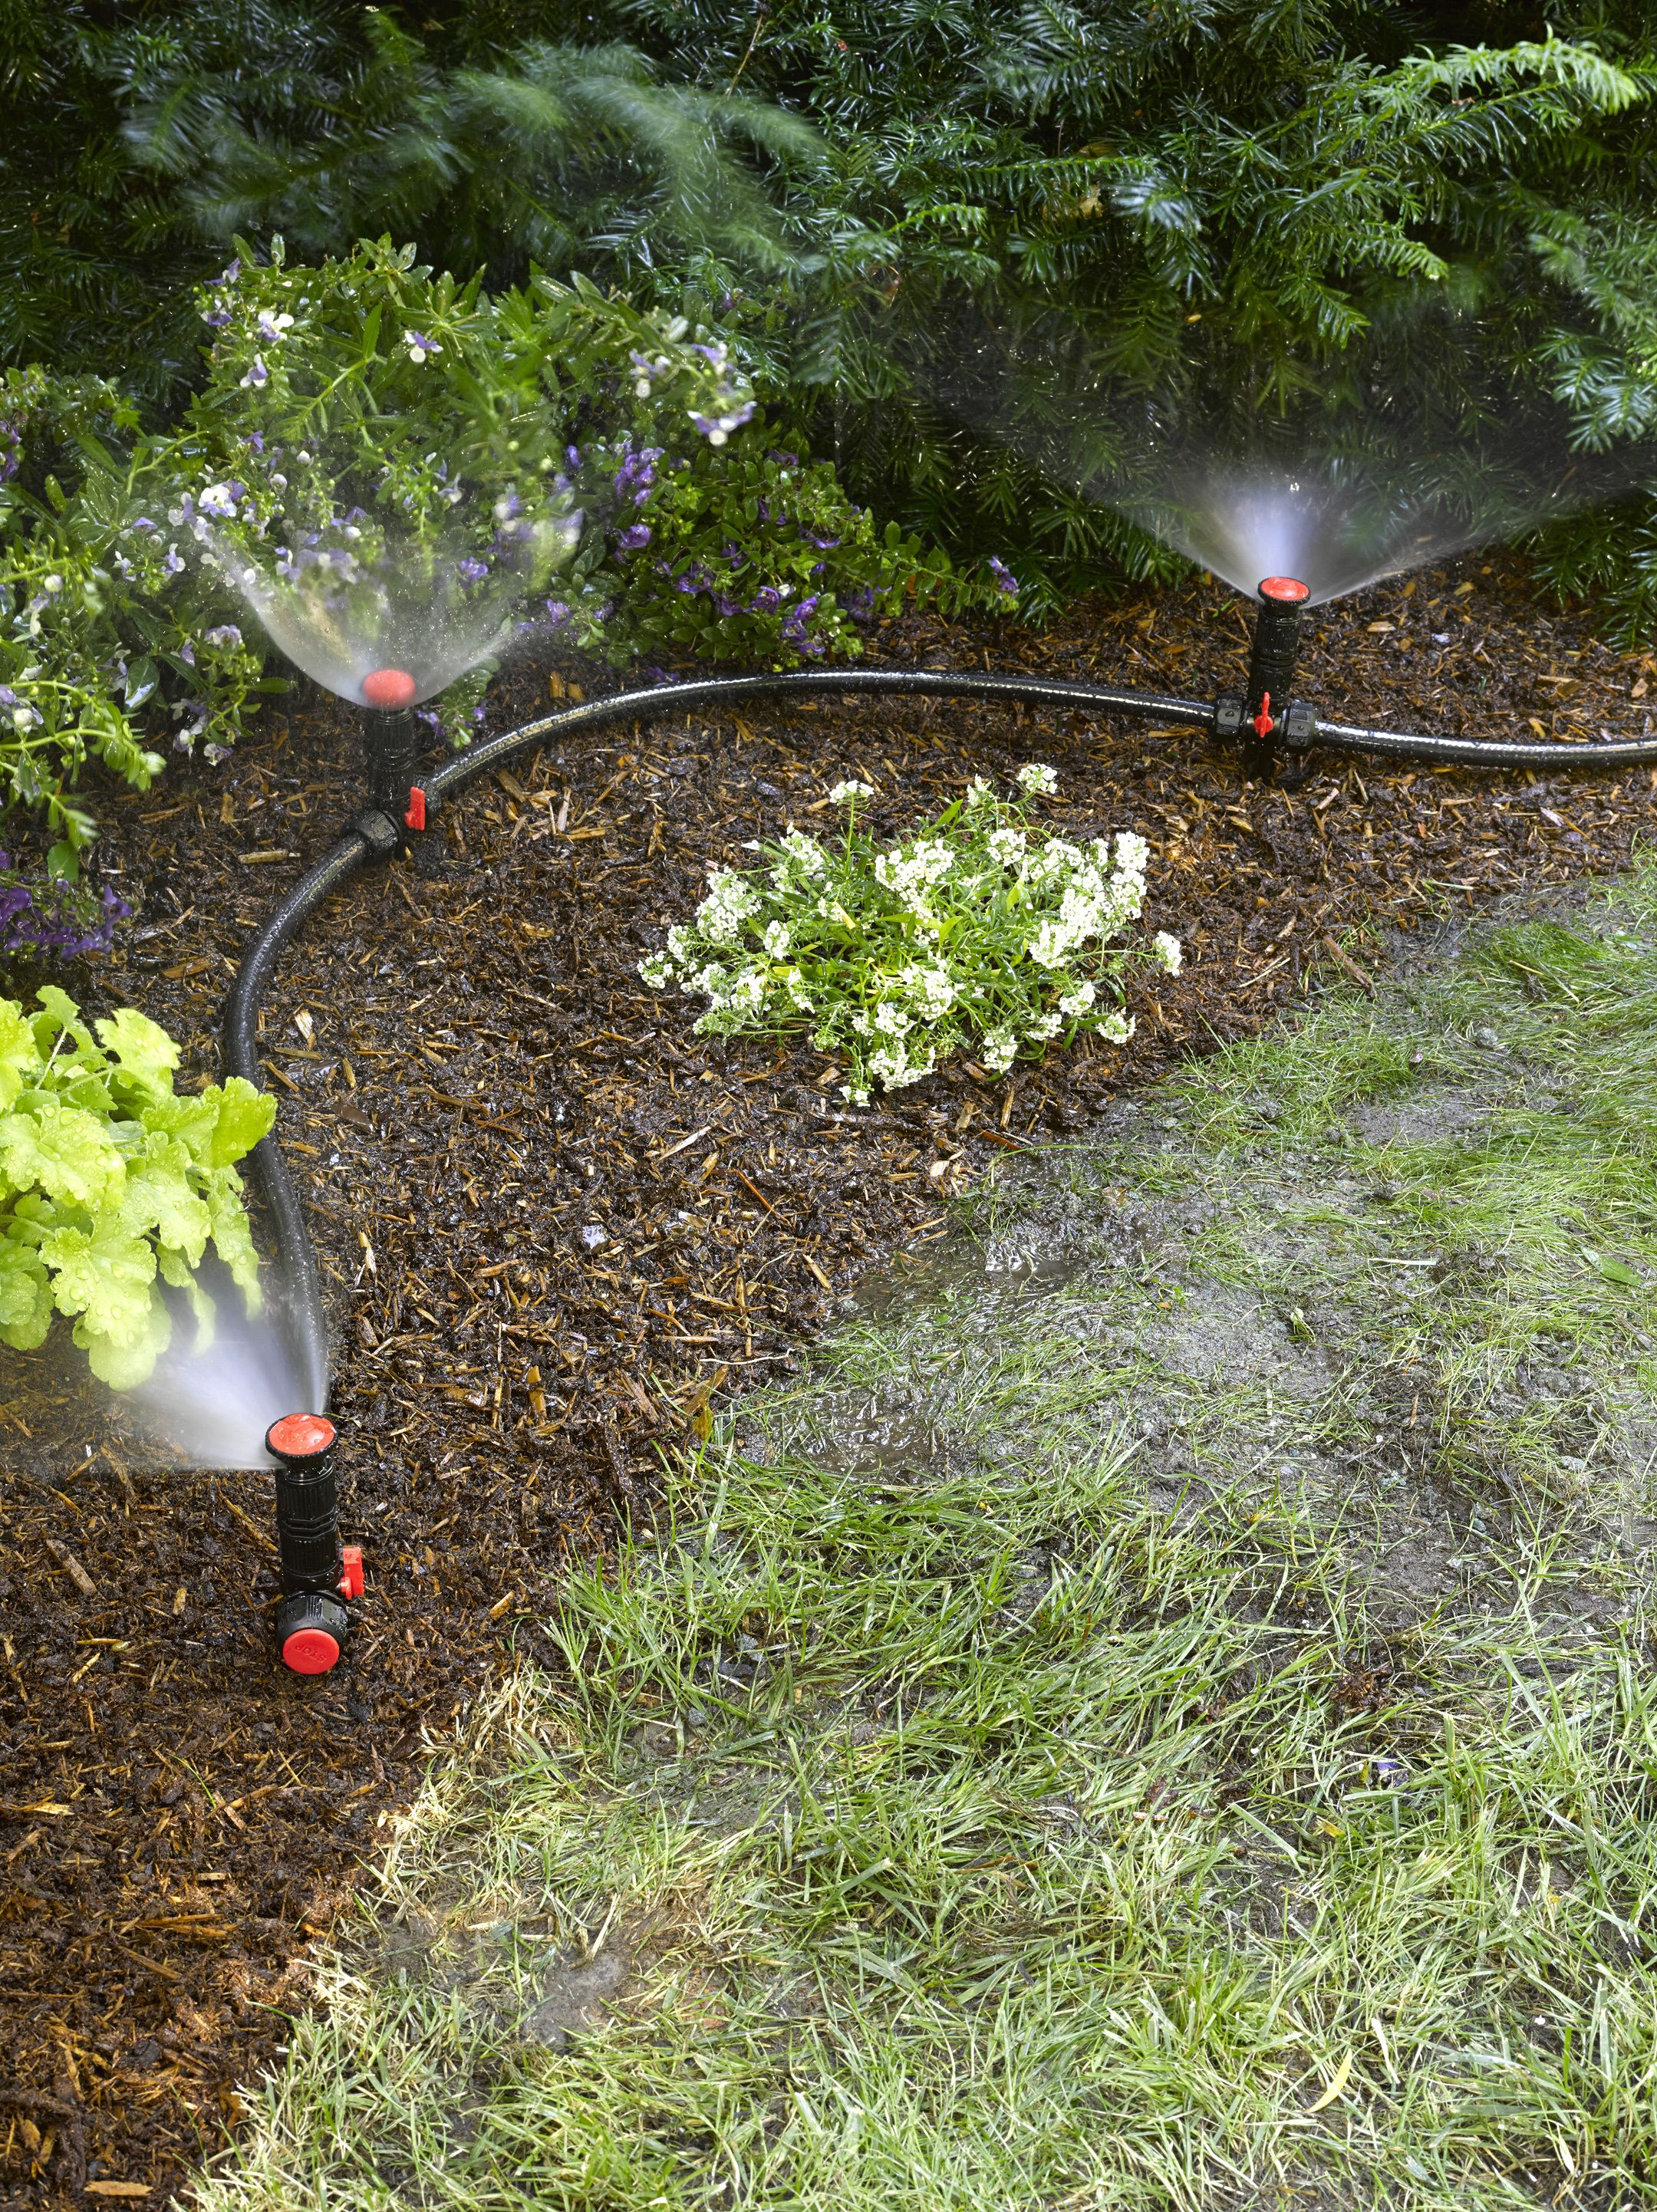 Above Ground Irrigation Systems For Landscaping Diy Sprinkler